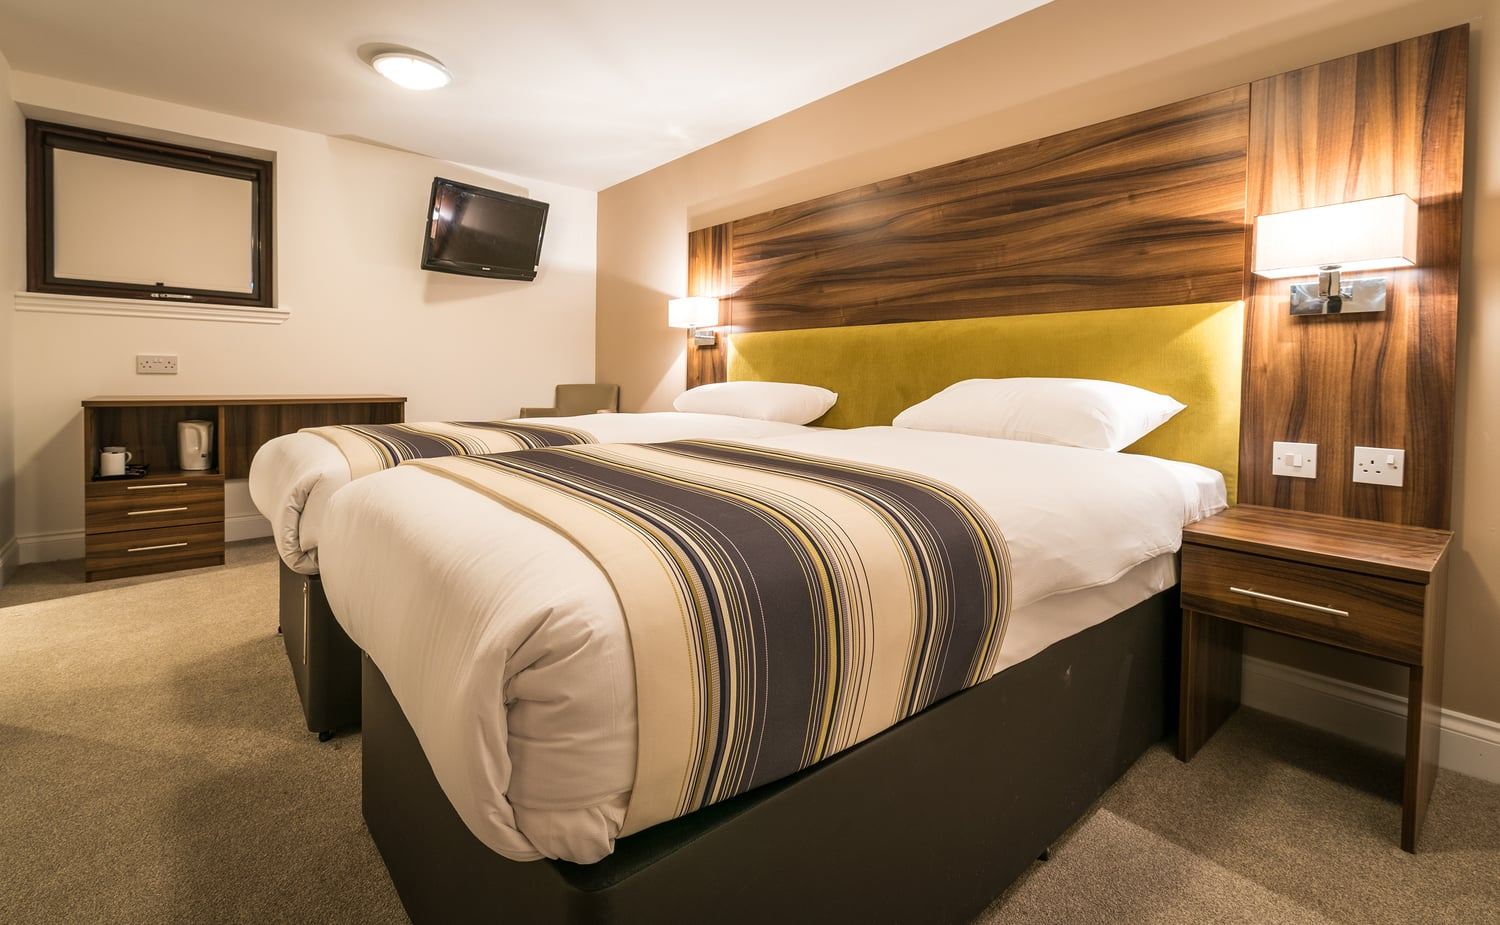 Grand hotel bedroom with wall mounted tvs and modern interior